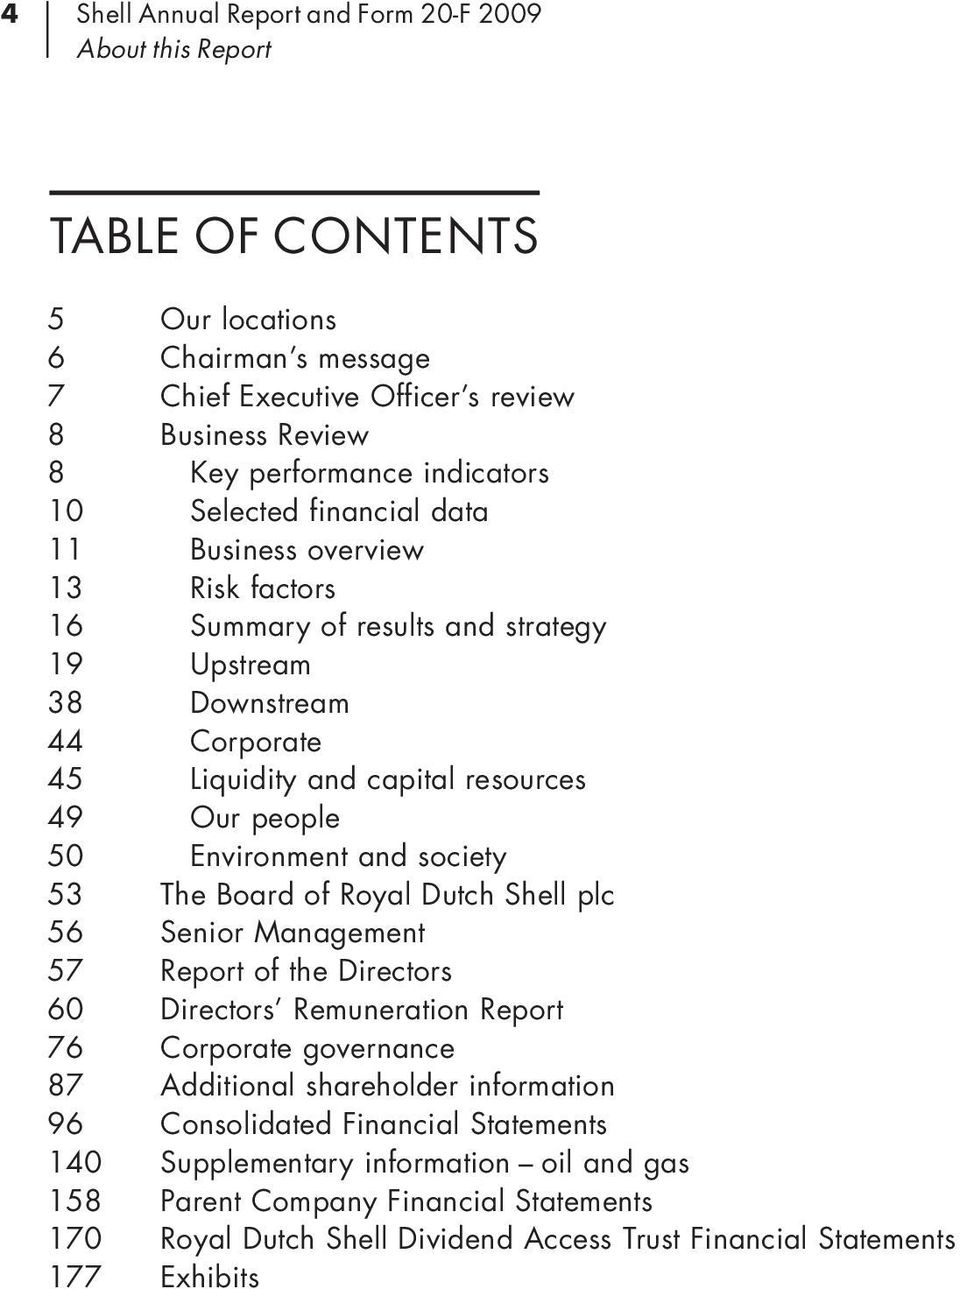 Environment and society 53 The Board of Royal Dutch Shell plc 56 Senior Management 57 Report of the Directors 60 Directors Remuneration Report 76 Corporate governance 87 Additional shareholder